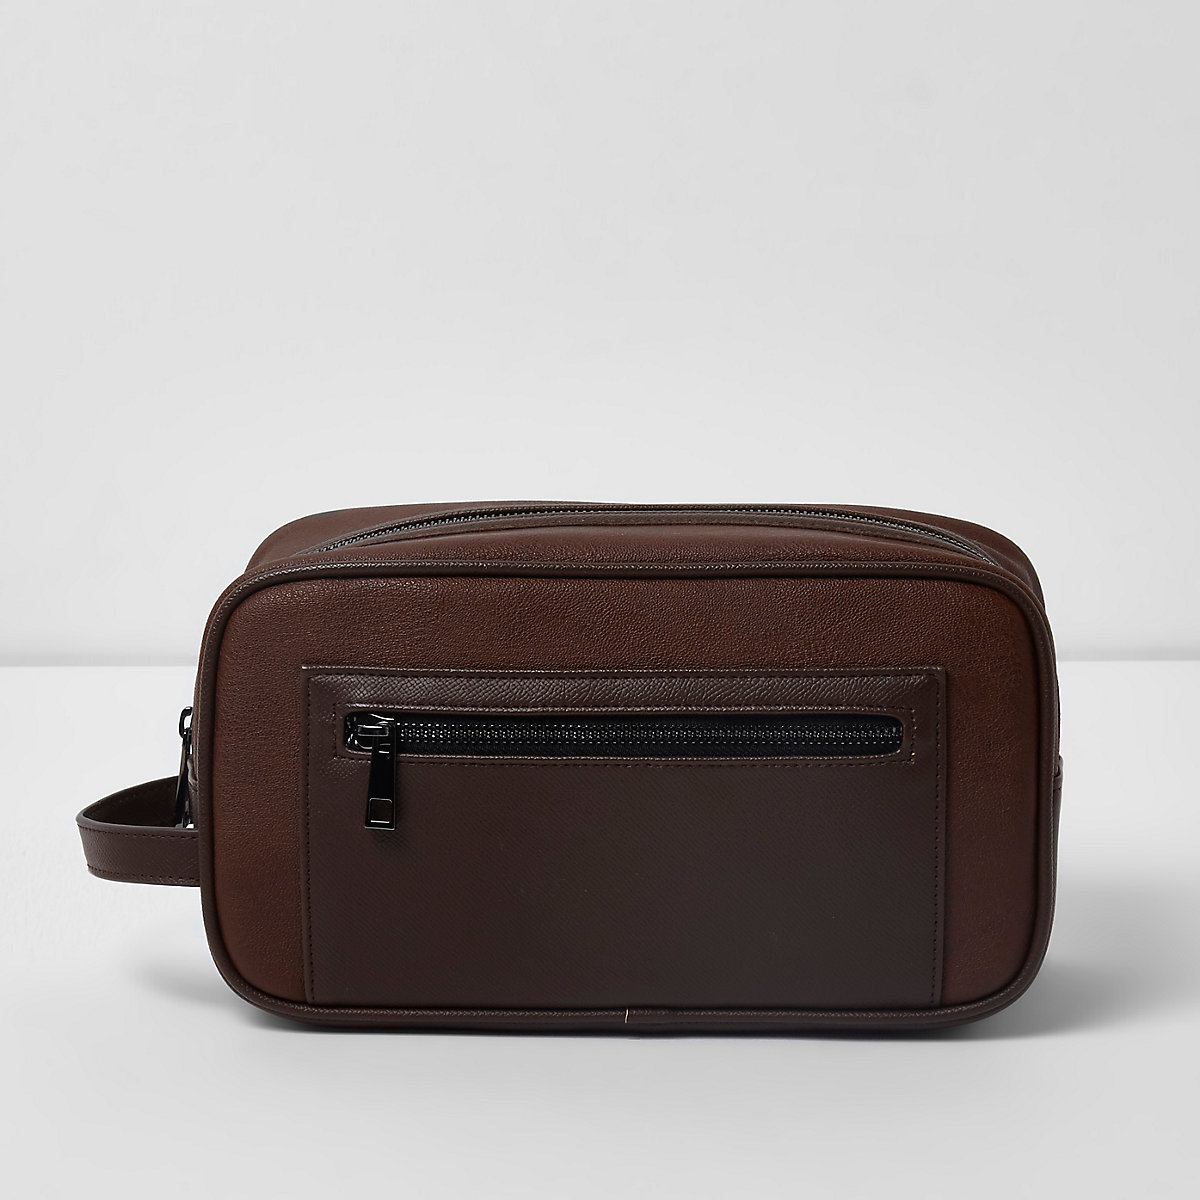 c6b29d4fcbb2 Brown zip front wash bag - Novelty and Gadgets - Sale - men